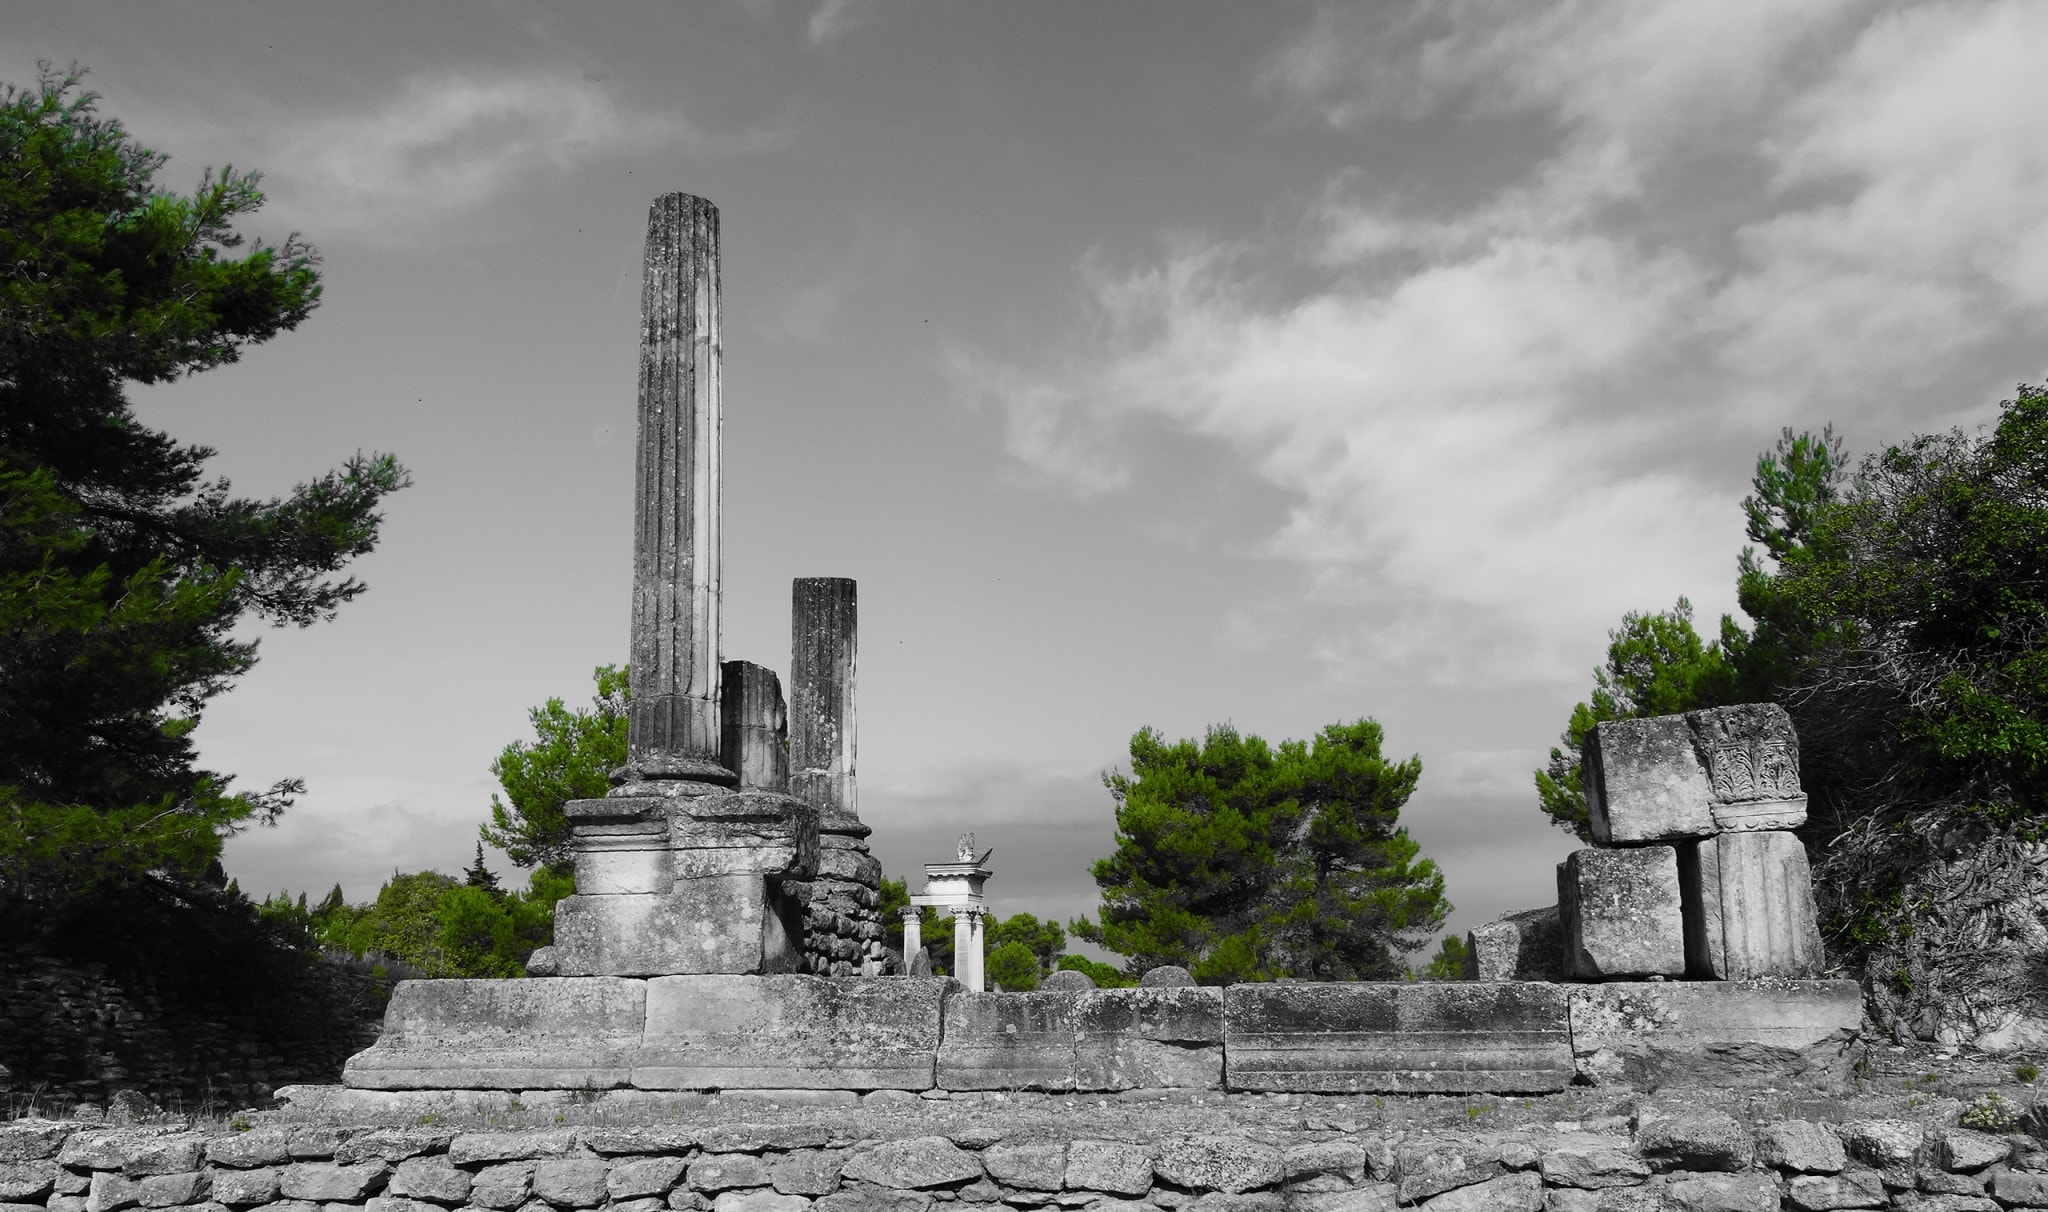 Montmajour & Silvacane Abbey, Glanum and Salagon: leg 4 of our South France road trip itinerary